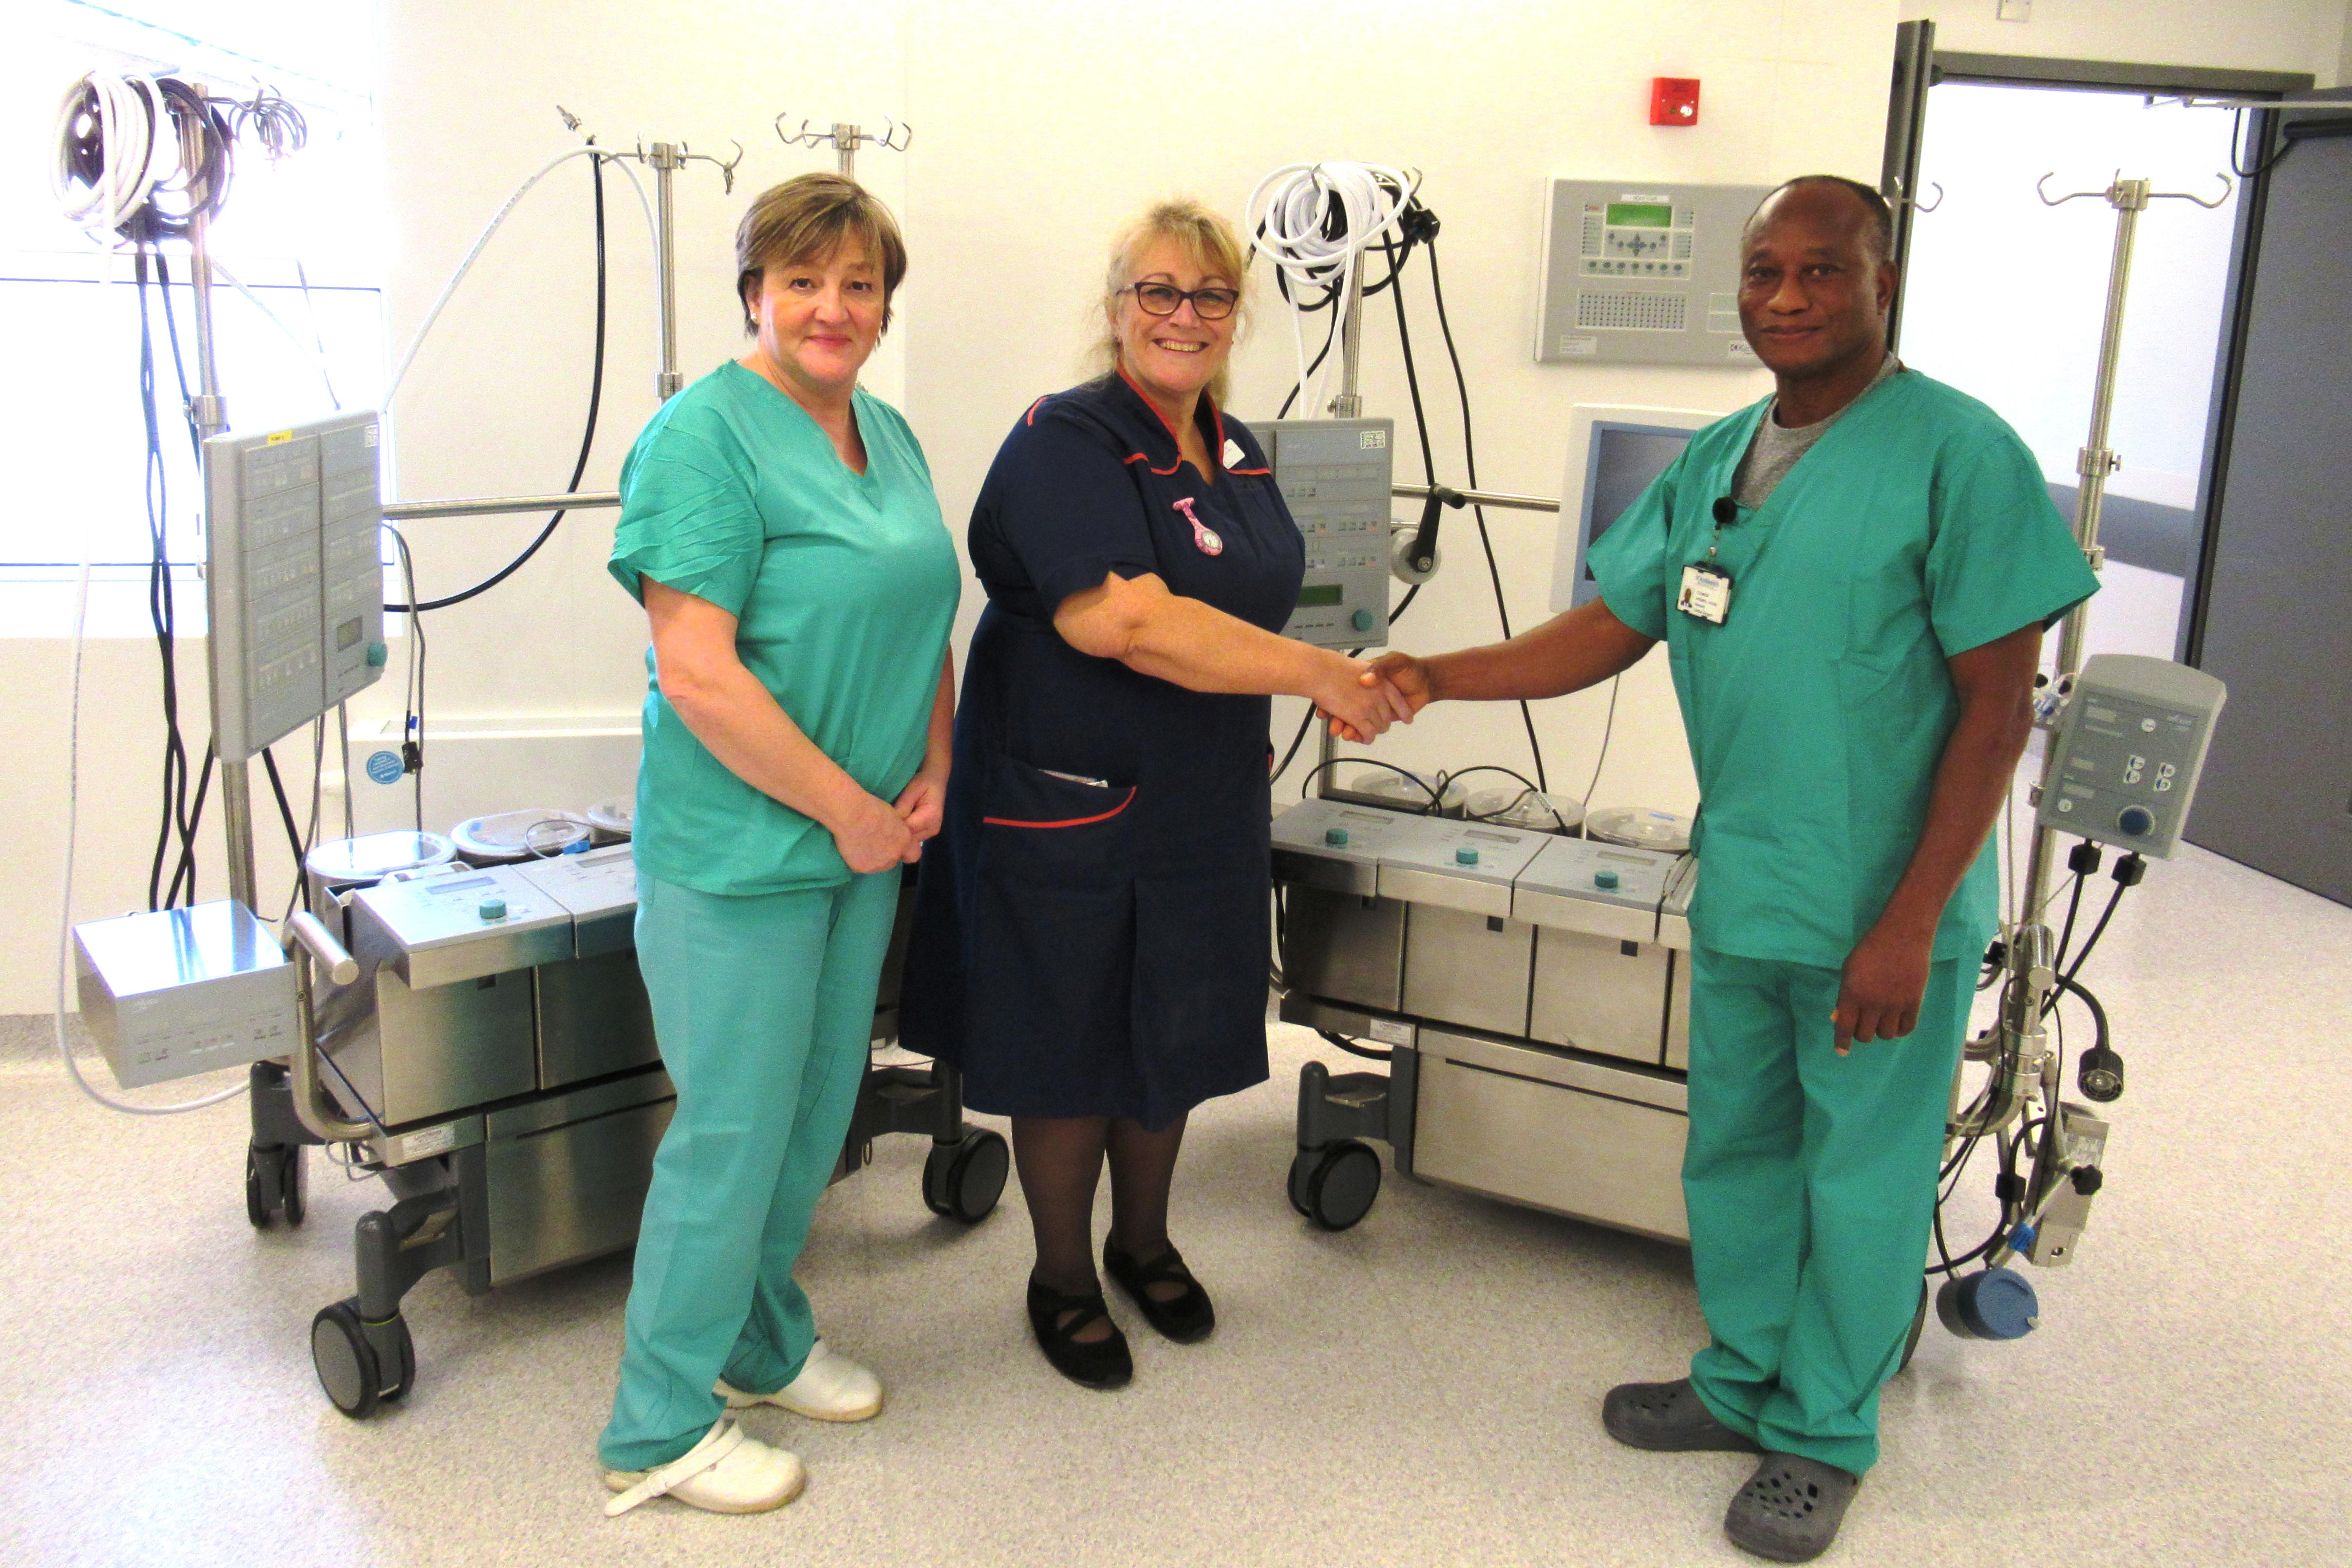 Spire St Anthony's Hospital donates two cardiopulmonary bypass machines